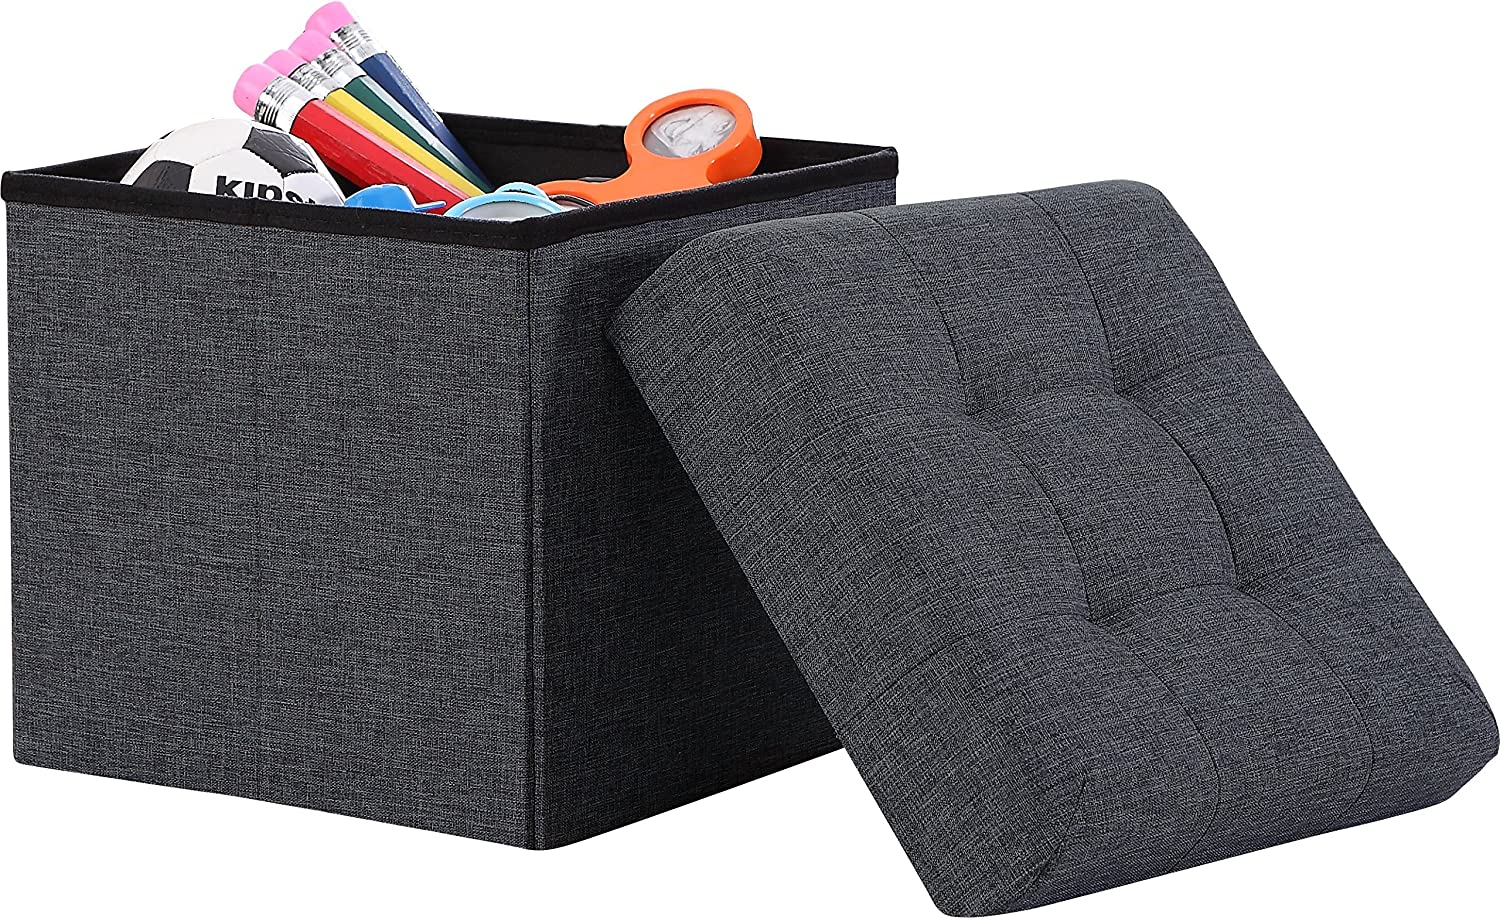 "Ornavo Home Foldable Tufted Linen Storage Ottoman Square Cube Foot Rest Stool/Seat - 15"" x 15"" x 15"" (Black)"